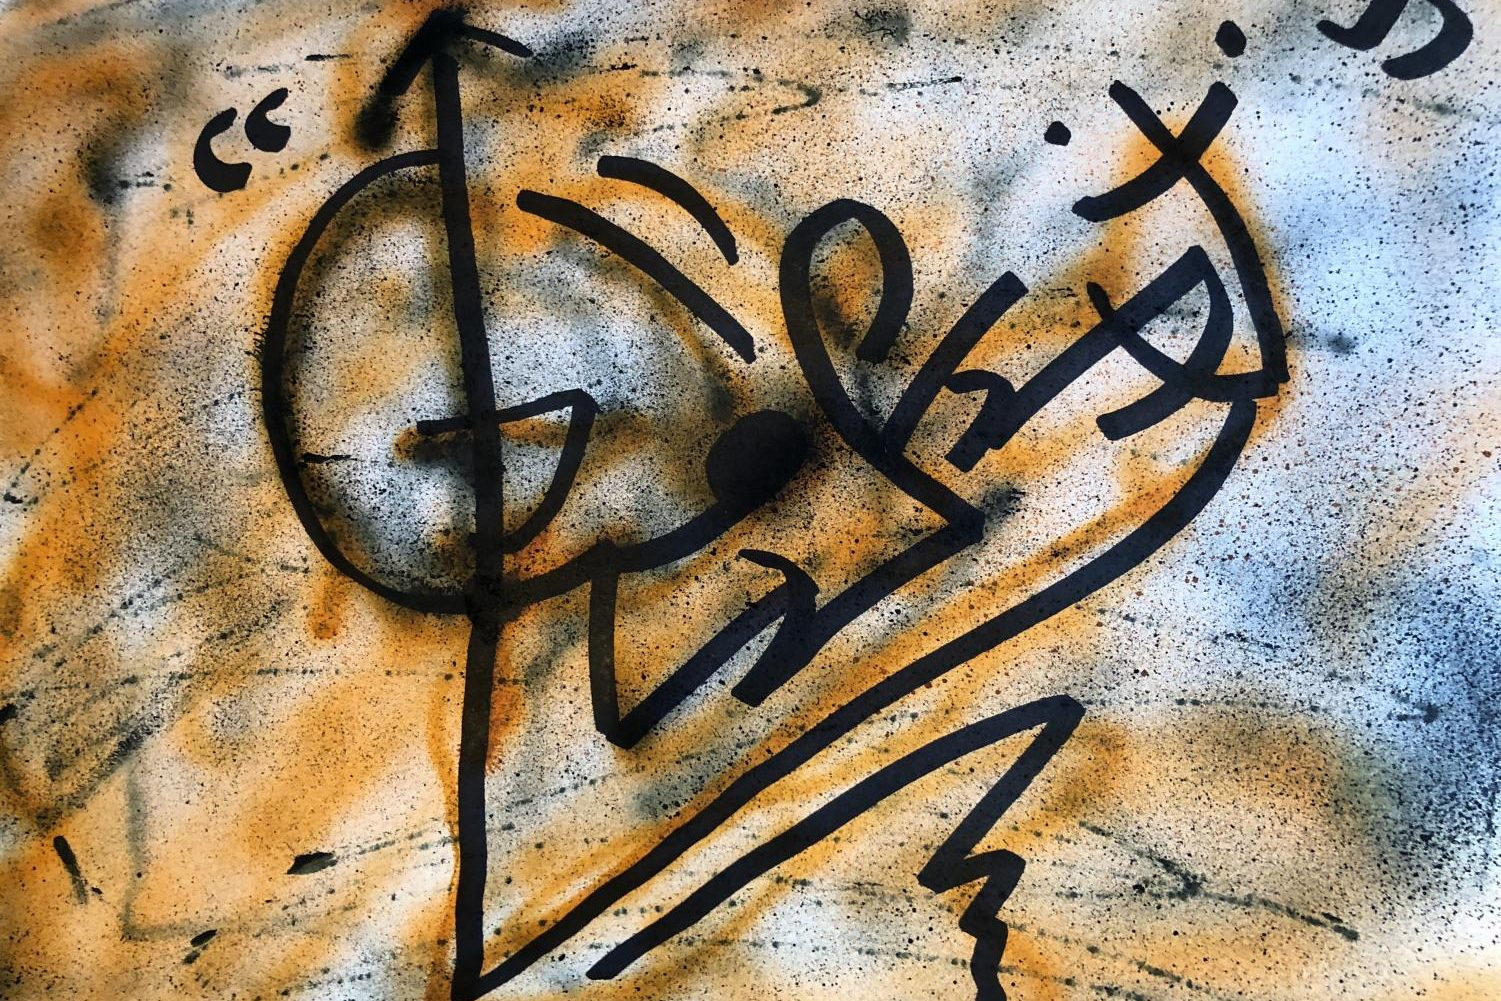 One of Emmett Kraft's works in the form of graffiti.